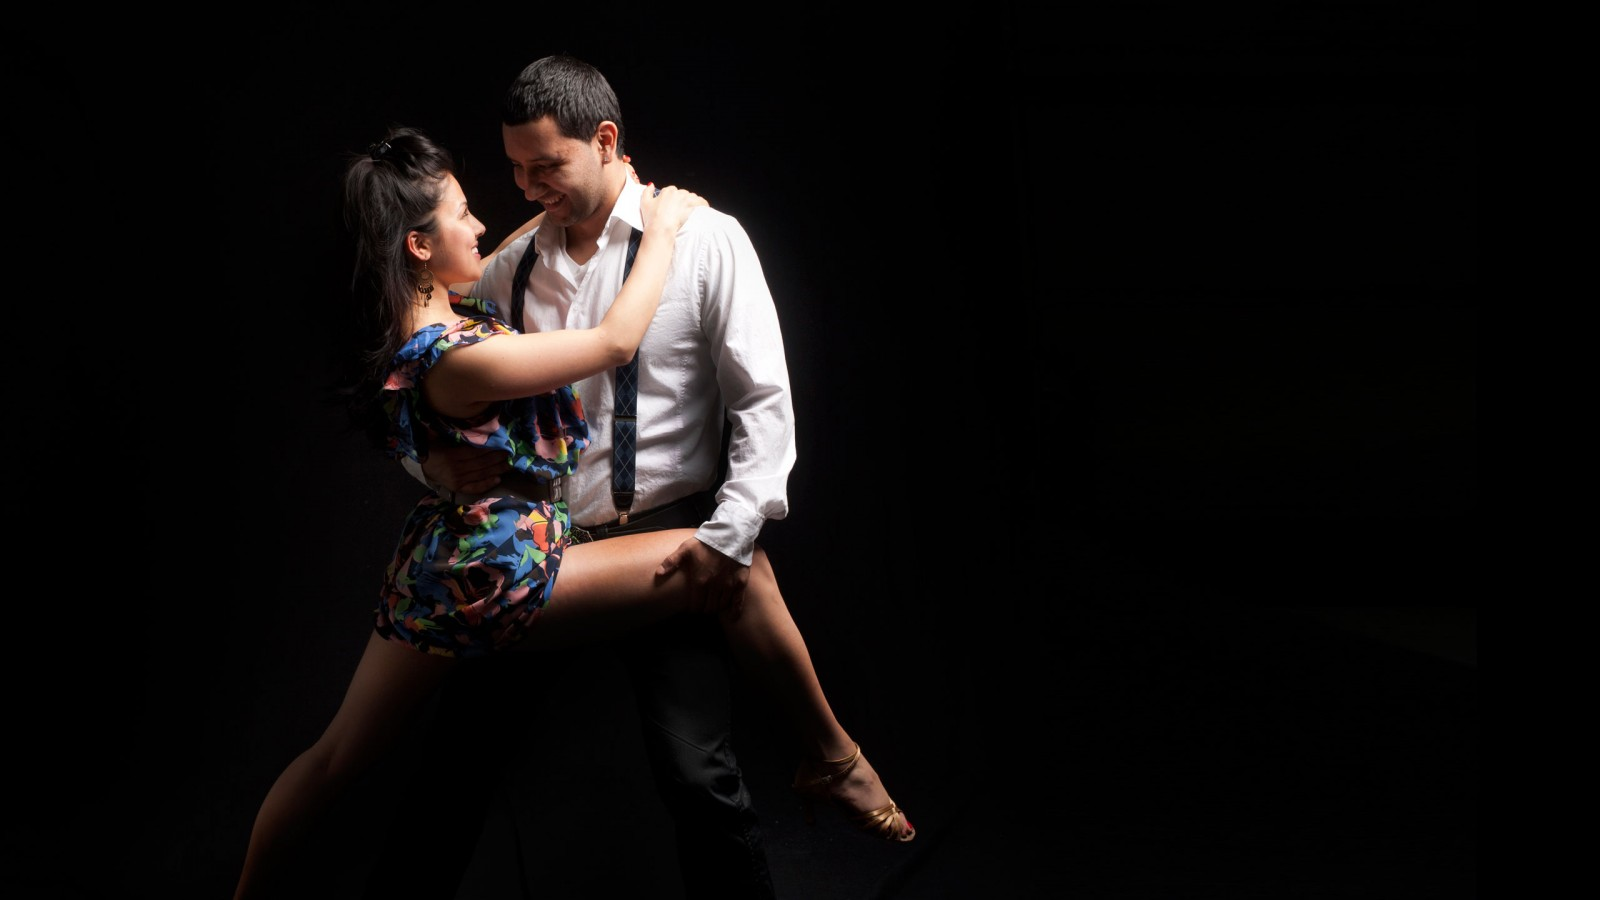 Best 48 Salsa Wallpaper on HipWallpaper Wallpaper Salsa Dancing 1600x900